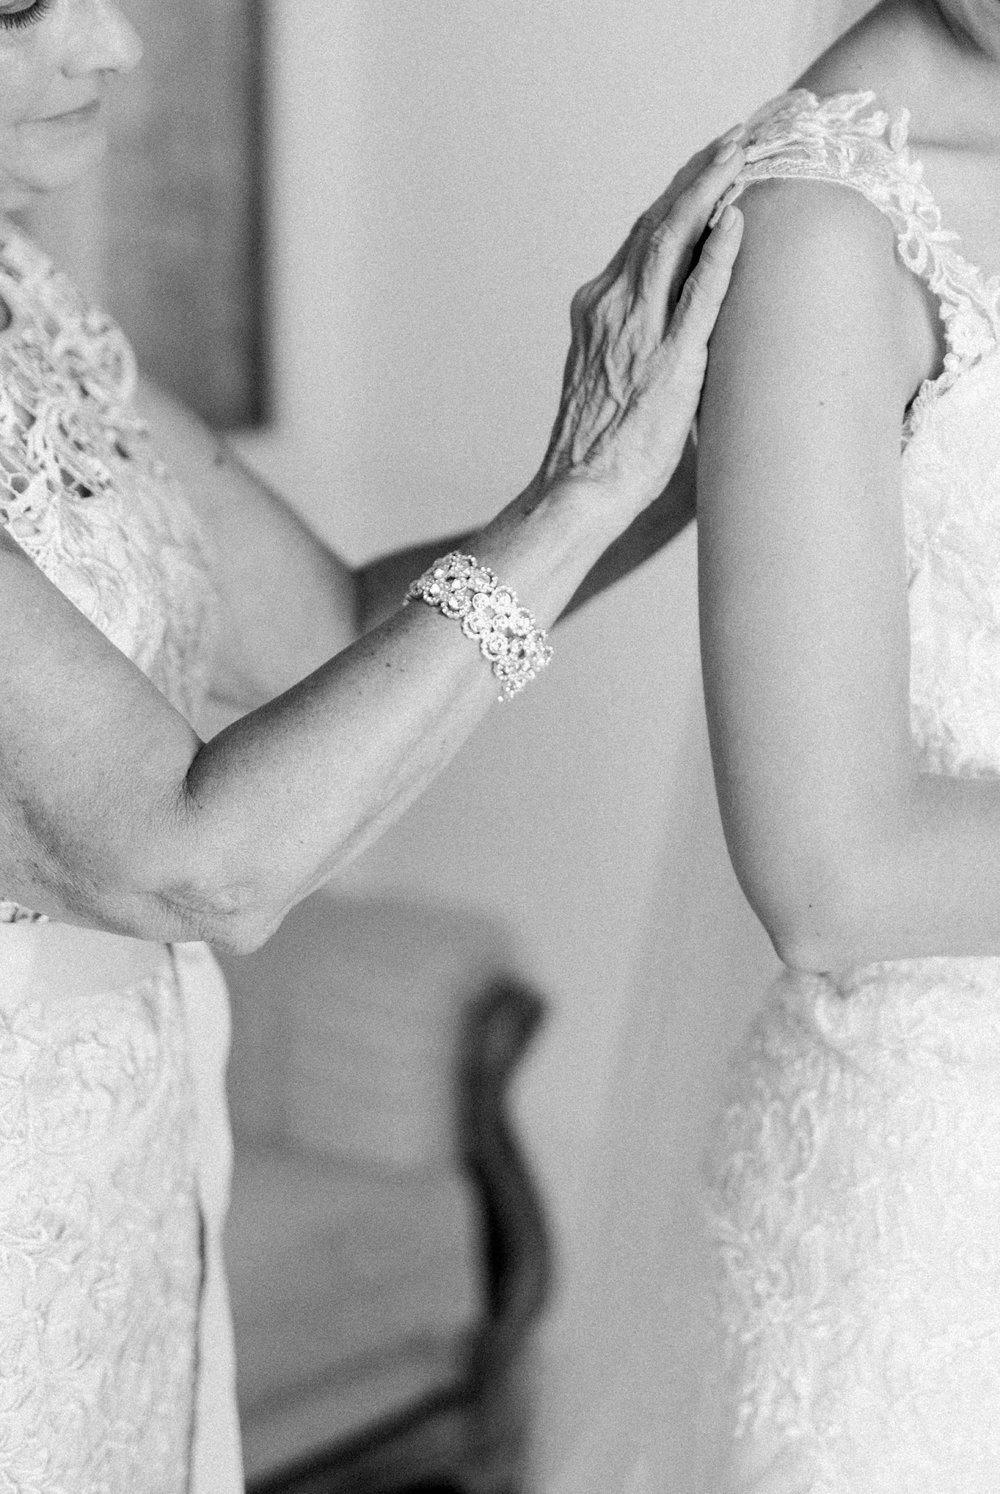 BedfordColumns_EntwinedEvents_Lynchburgwedding_VIrginiaweddingphotographer_ALlisonNIck 9.jpg